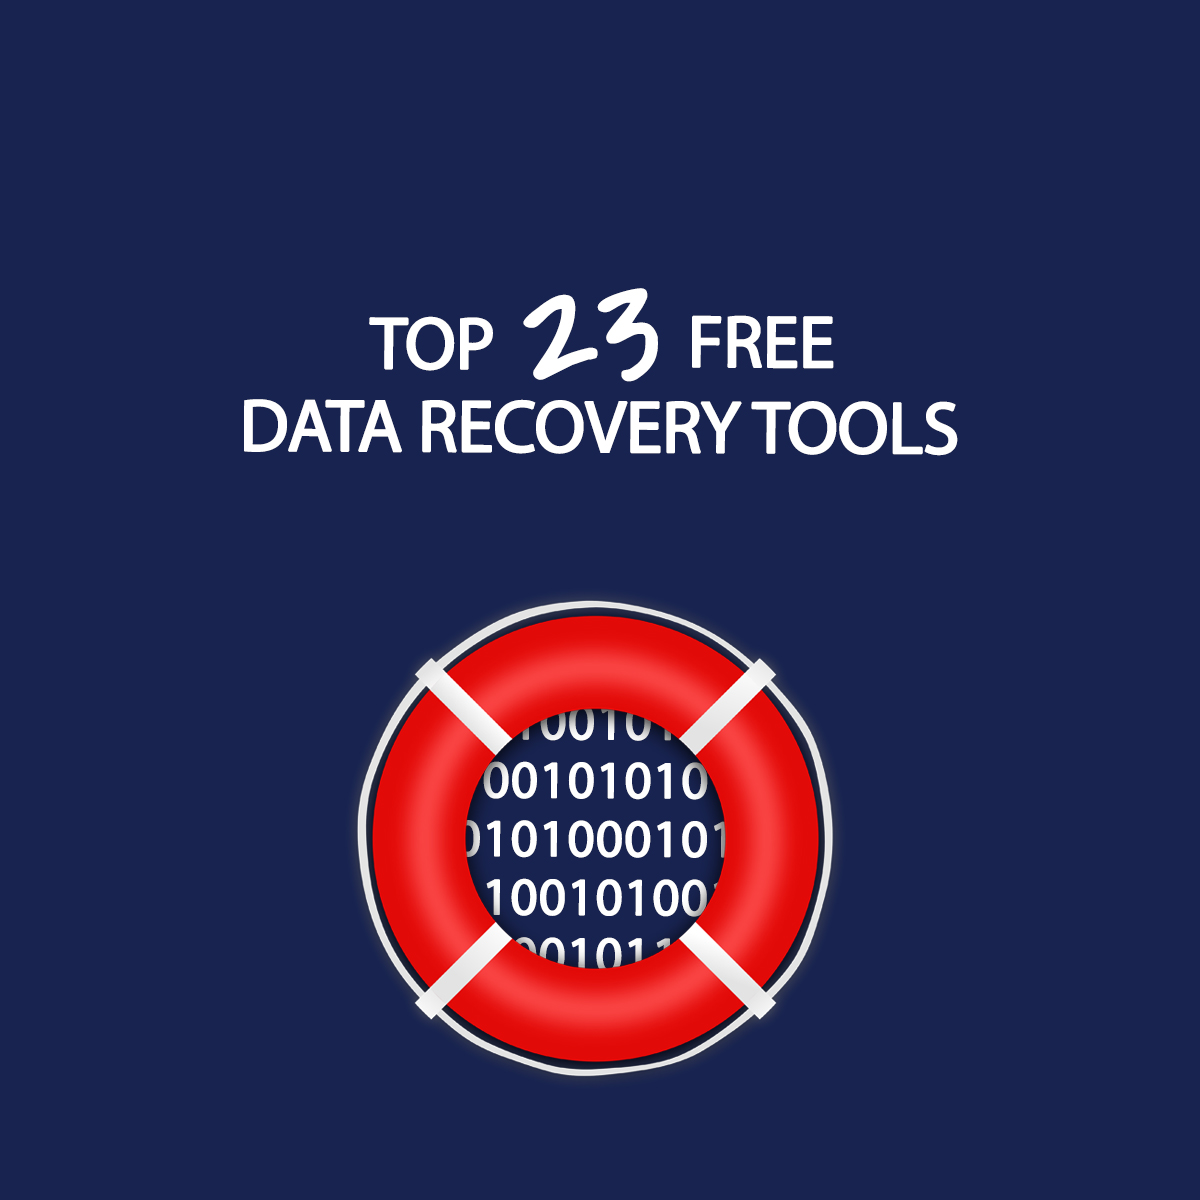 The top 23 free data recovery tools